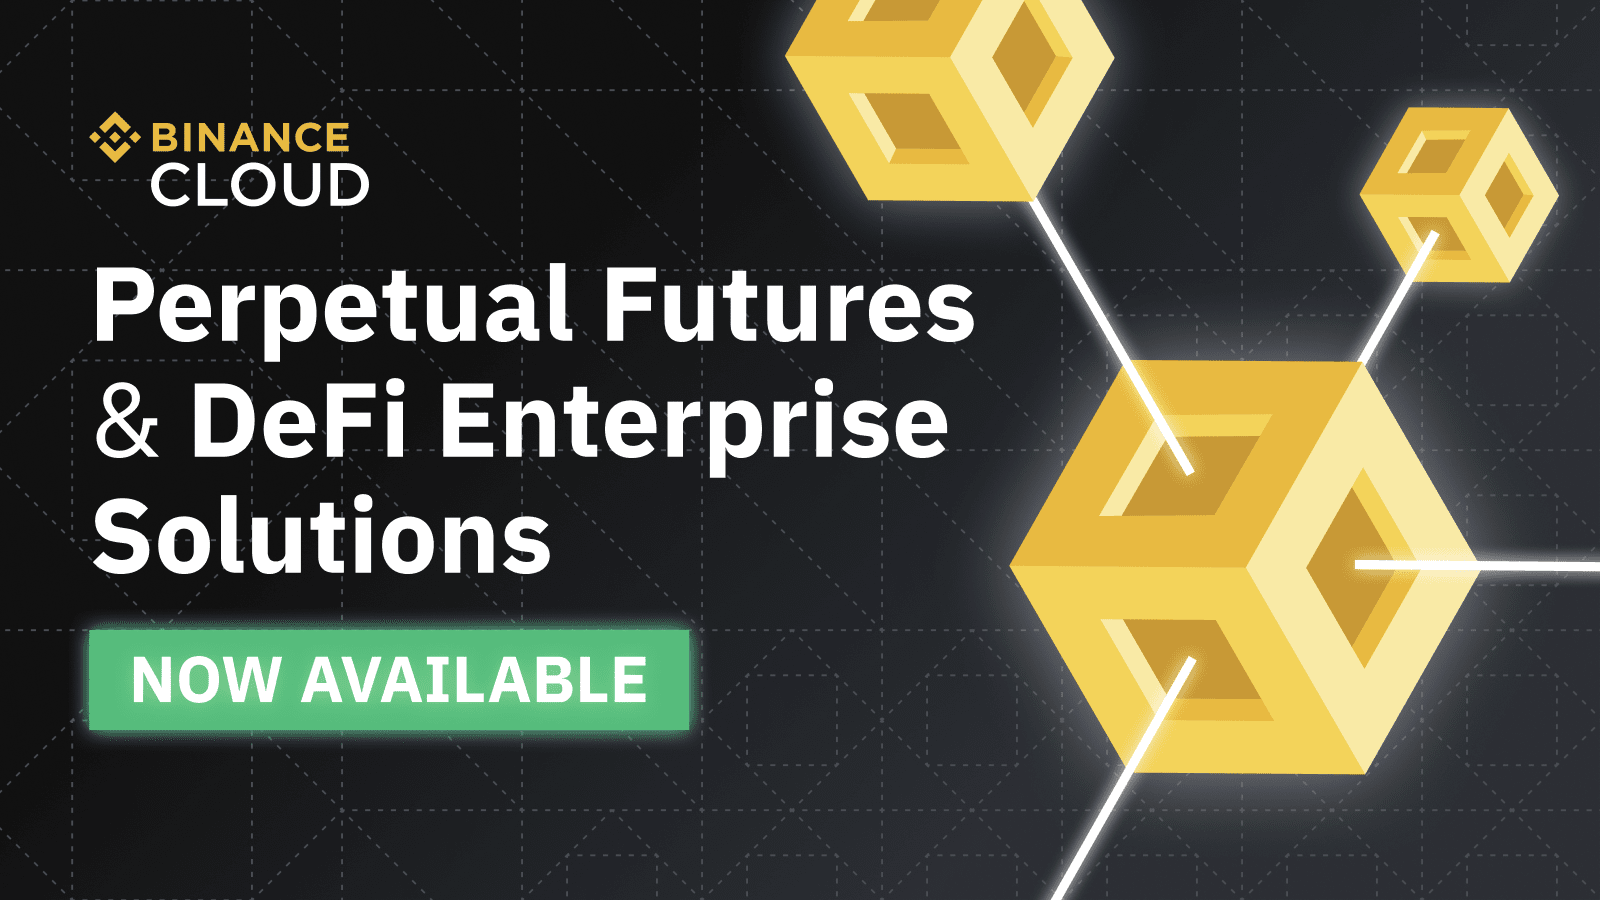 Binance Cloud Now Offers Perpetual Futures, DeFi Enterprise SolutionsCryptocurrency Trading Signals, Strategies & Templates | DexStrats